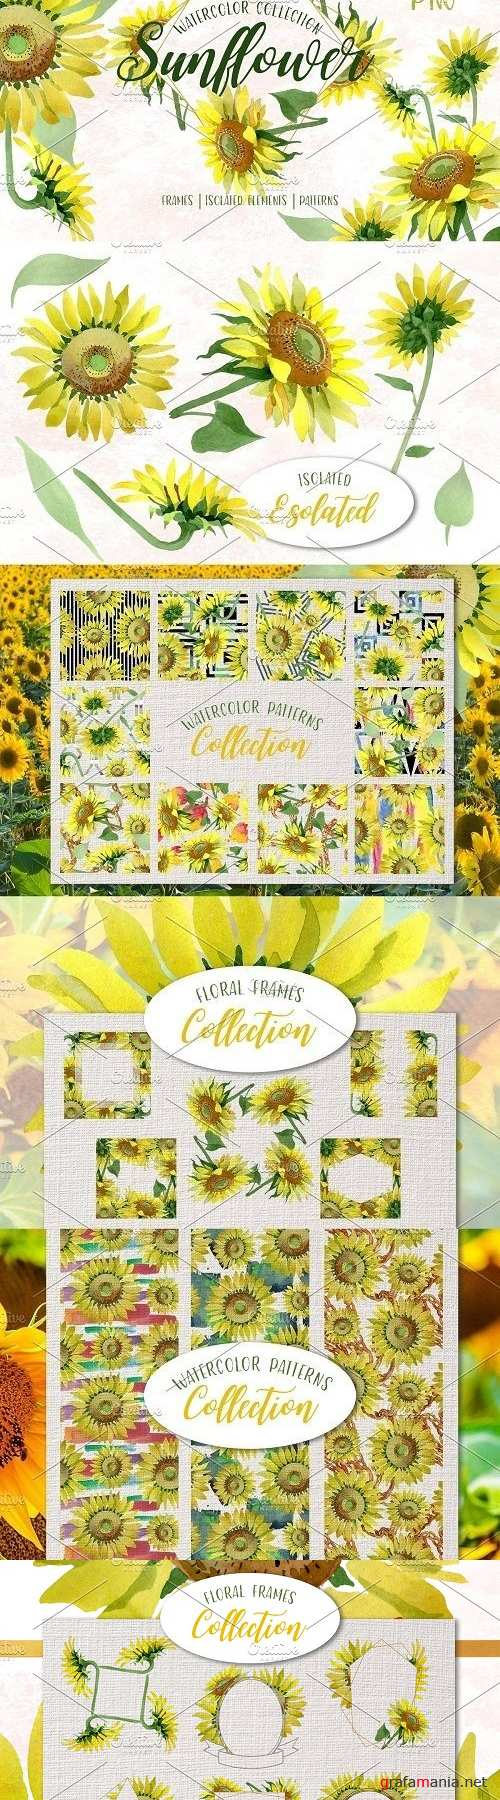 Sunflower Yellow Watercolor png - 3724215